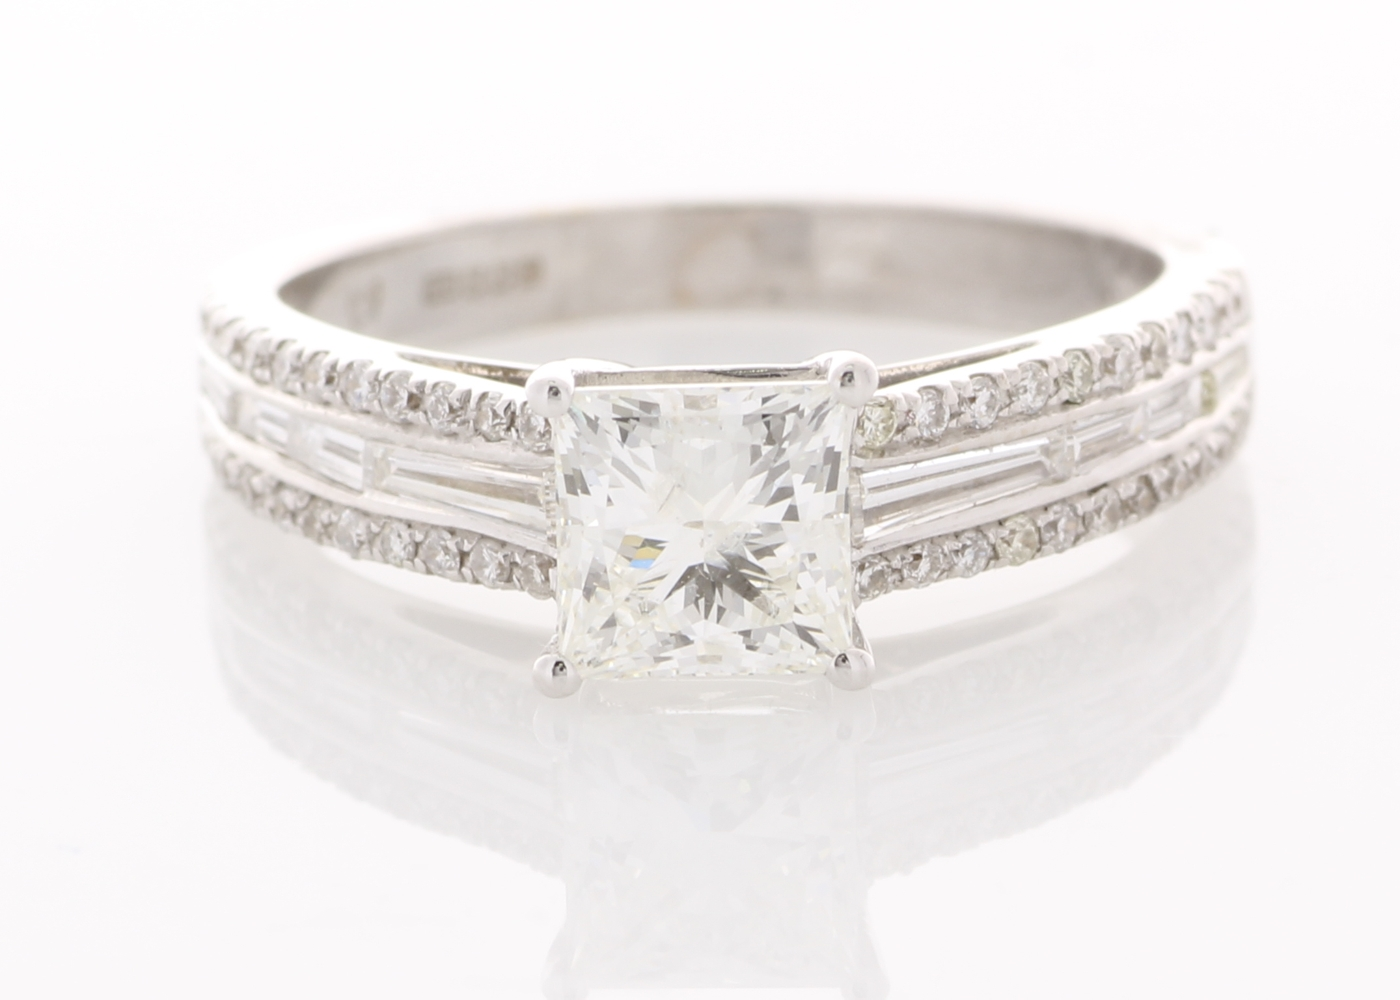 Lot 14 - 18ct White Gold Single Stone Prong Set With Stone Set Shoulders Diamond Ring 1.35